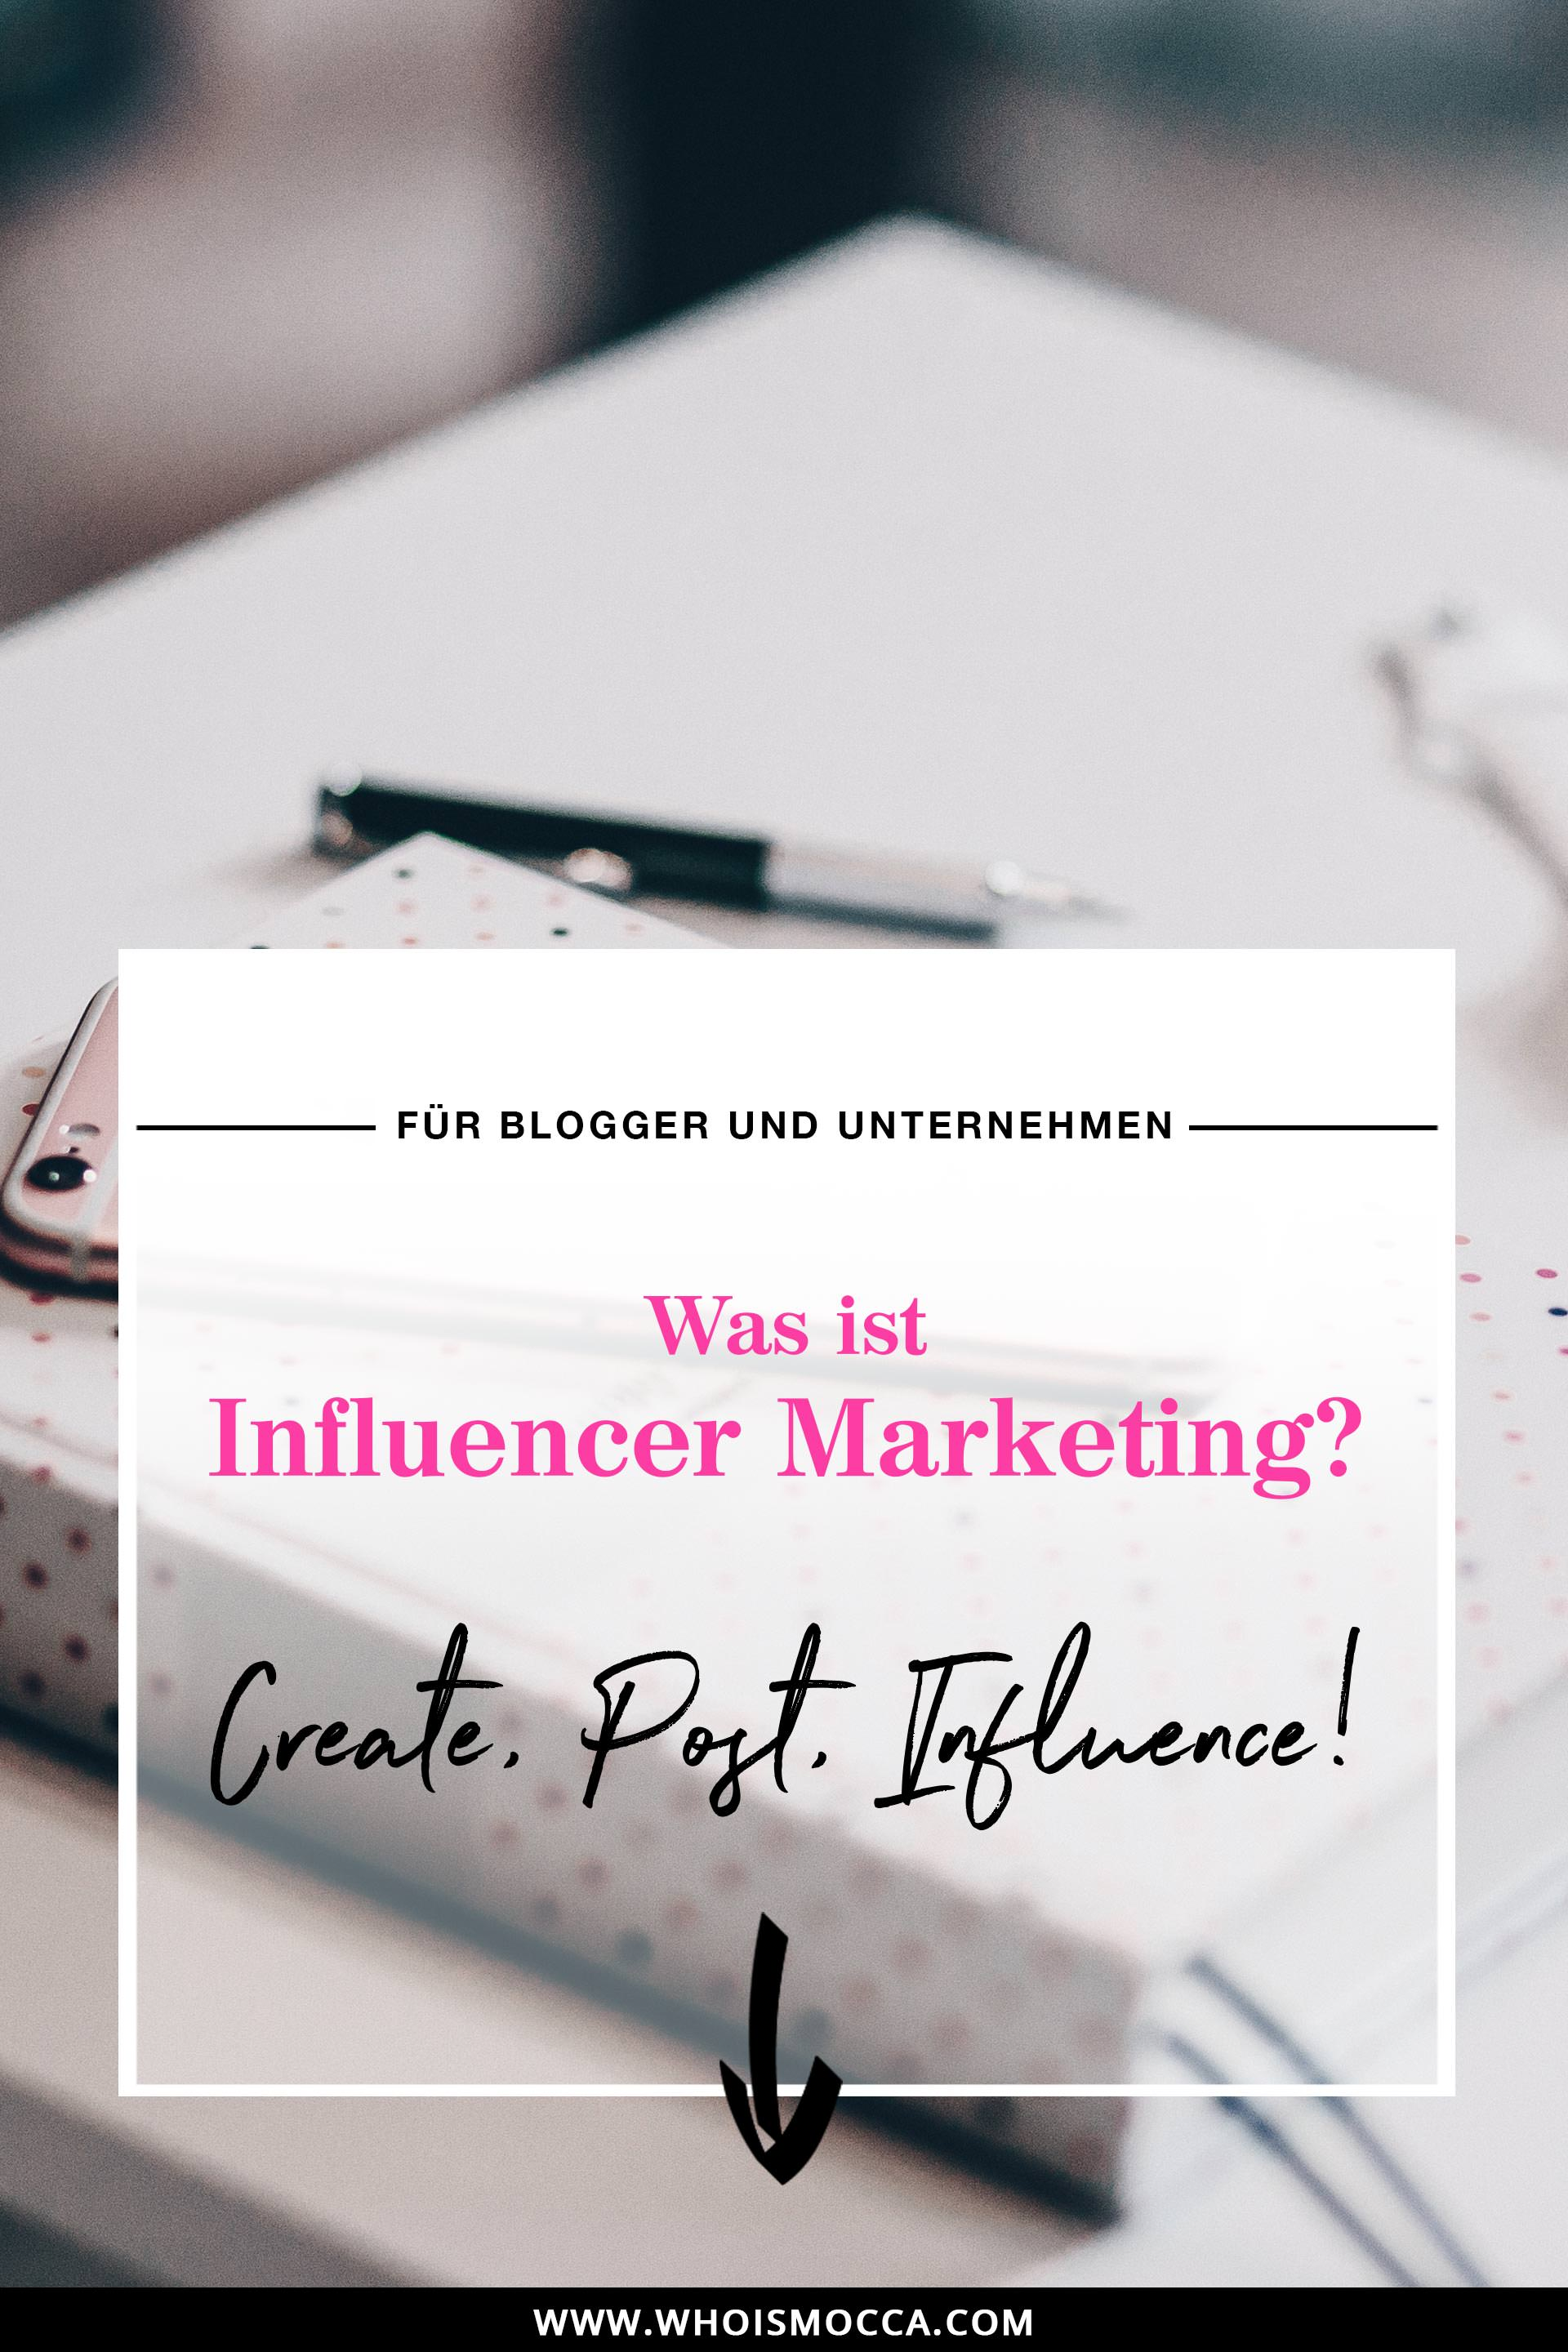 Was ist Influencer Marketing, Best Practice, Blogger Relations, klassische Werbung, Online Marketing Marketing Mix, Karriere Blog, Blogger und Influencer, www.whoismocca.com